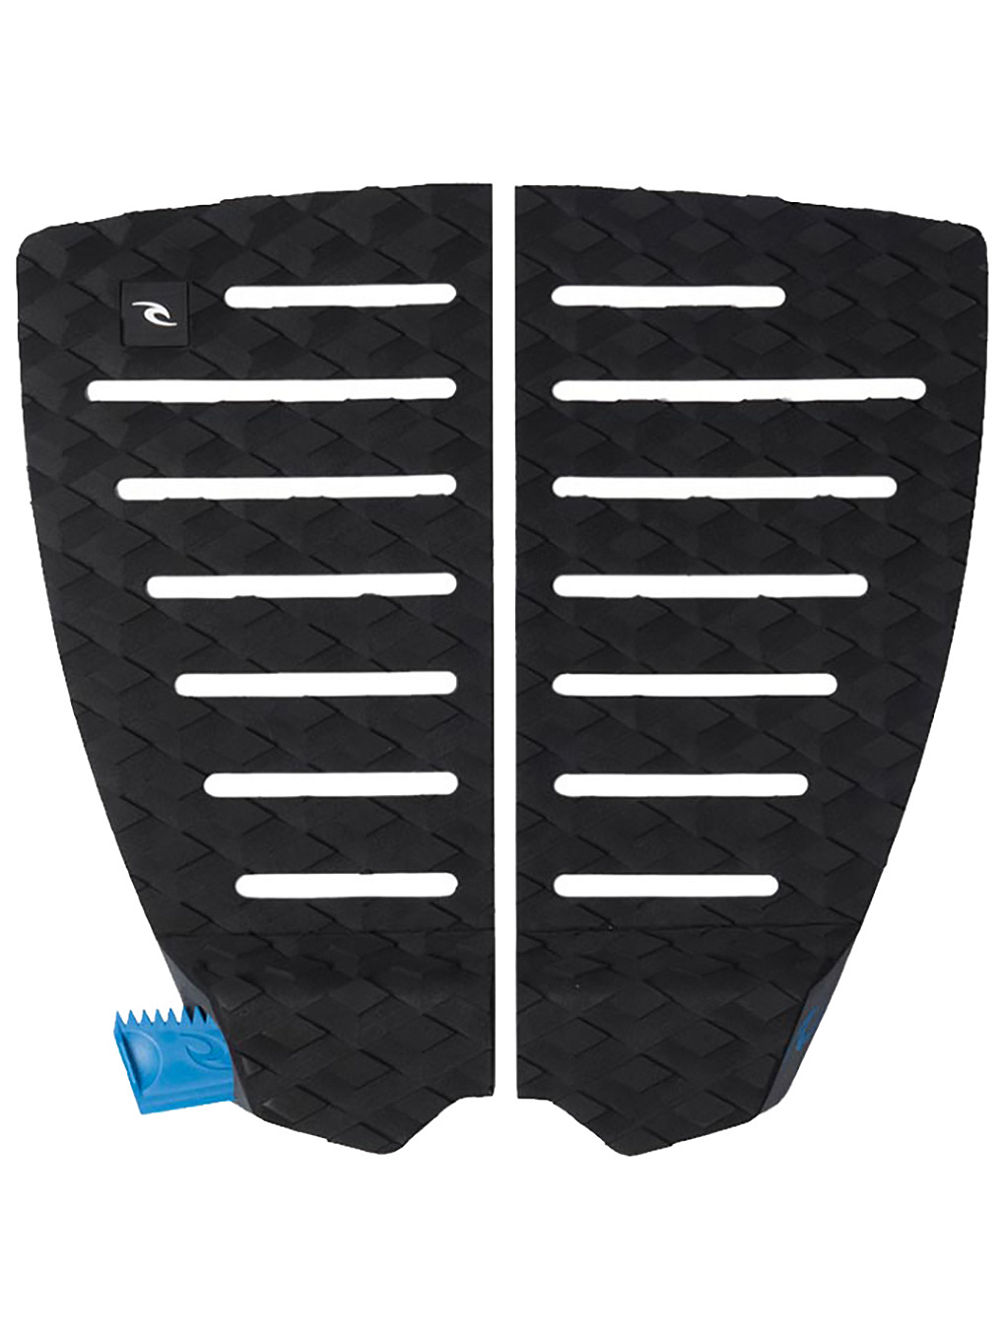 2 Piece DLX Traction Pad